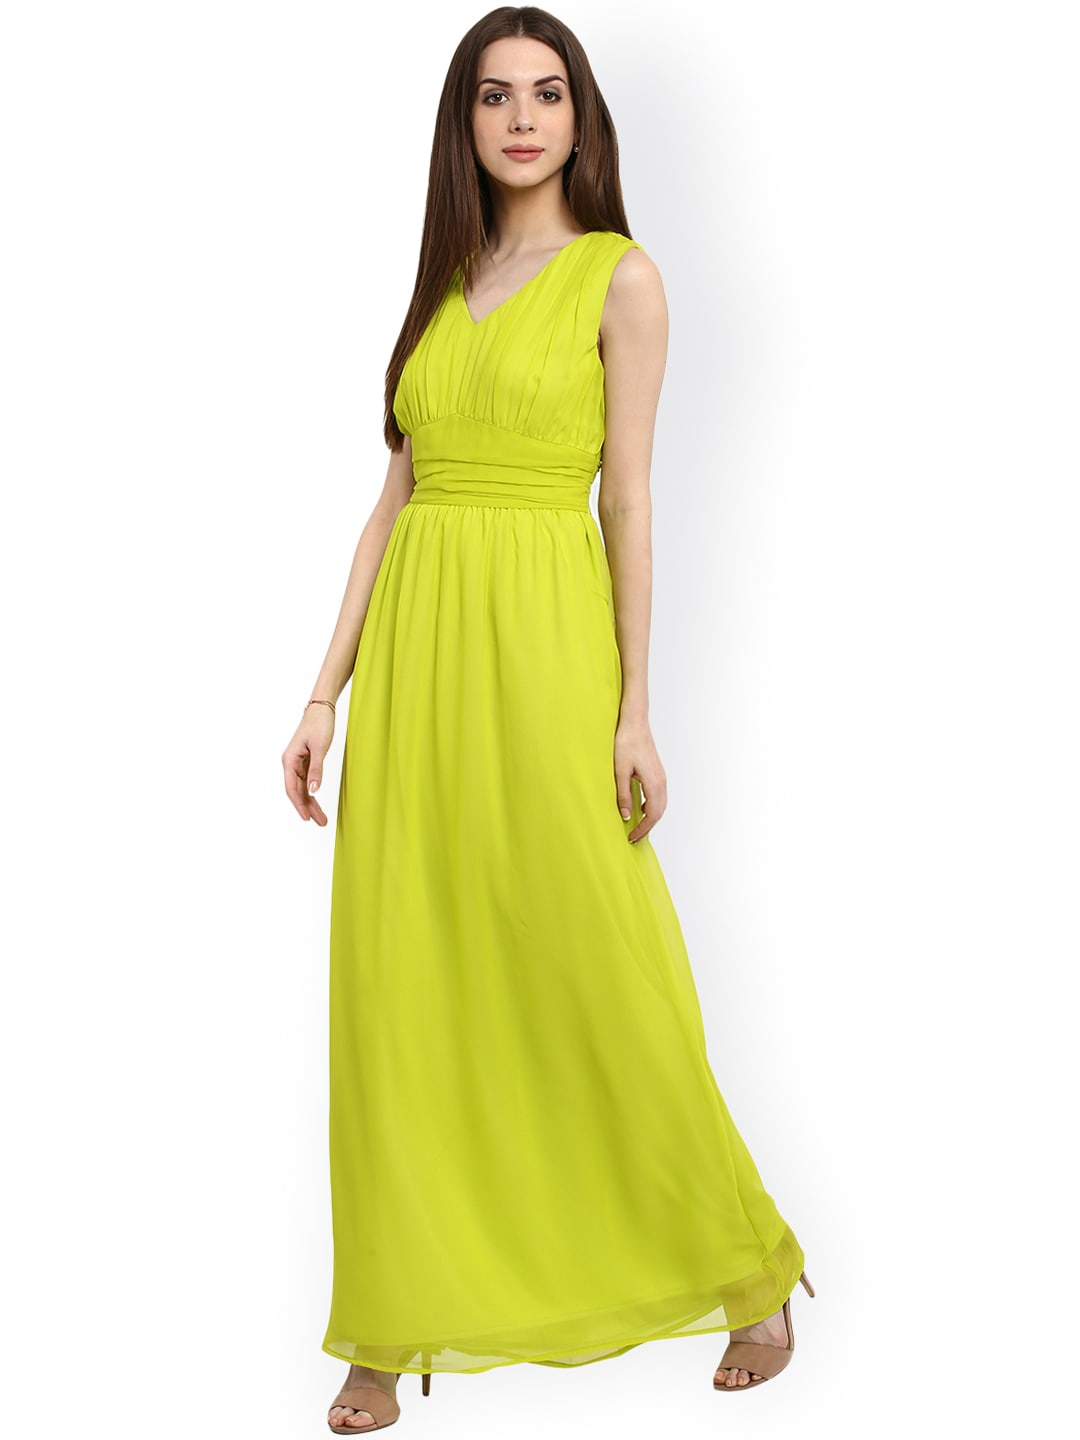 b8dcd0e0630d Gowns - Shop for Gown Online at Best Price